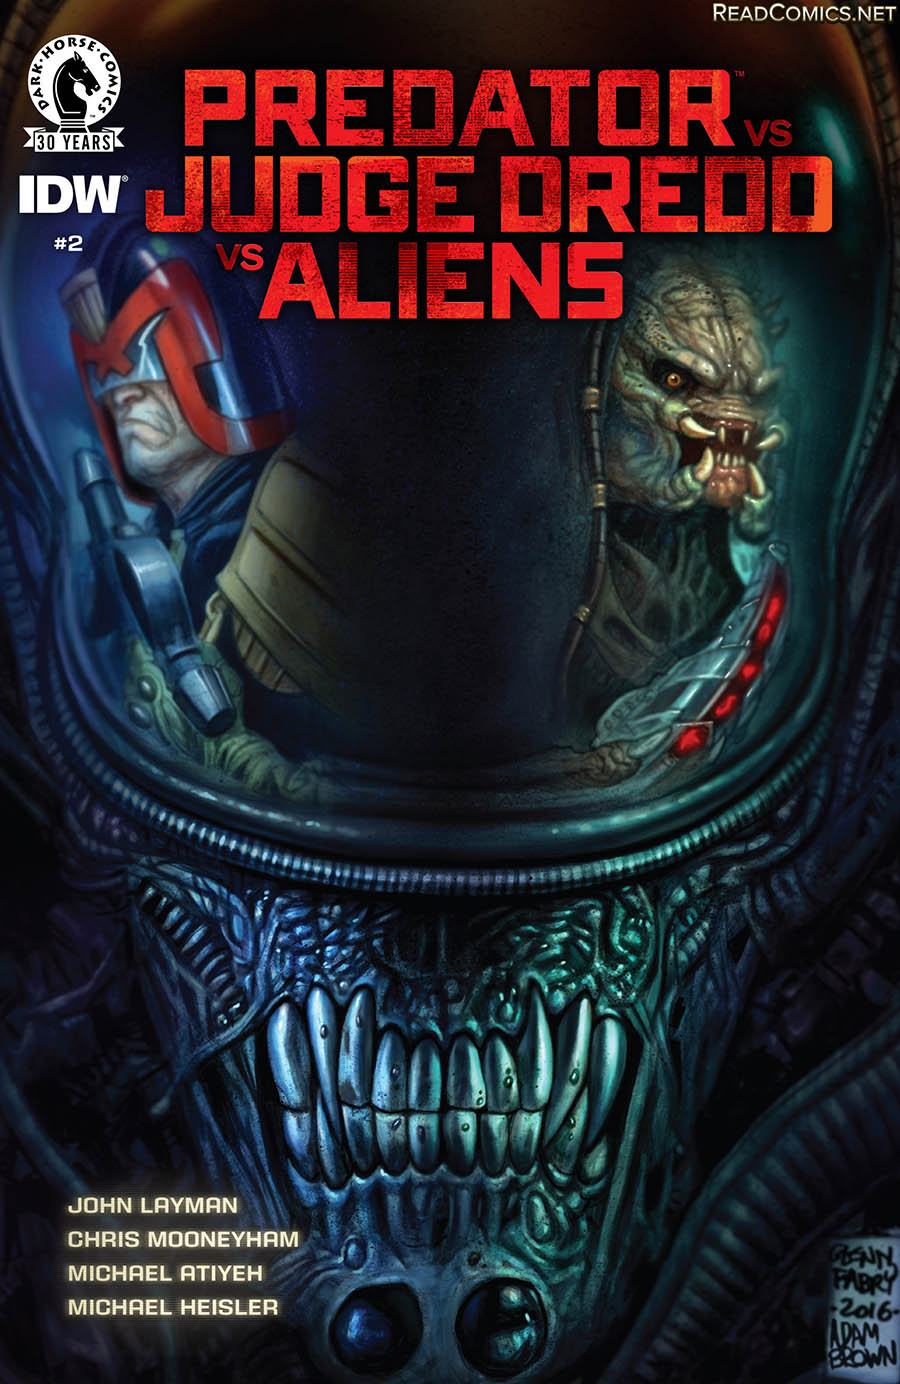 Predator vs. Judge Dredd vs. Aliens